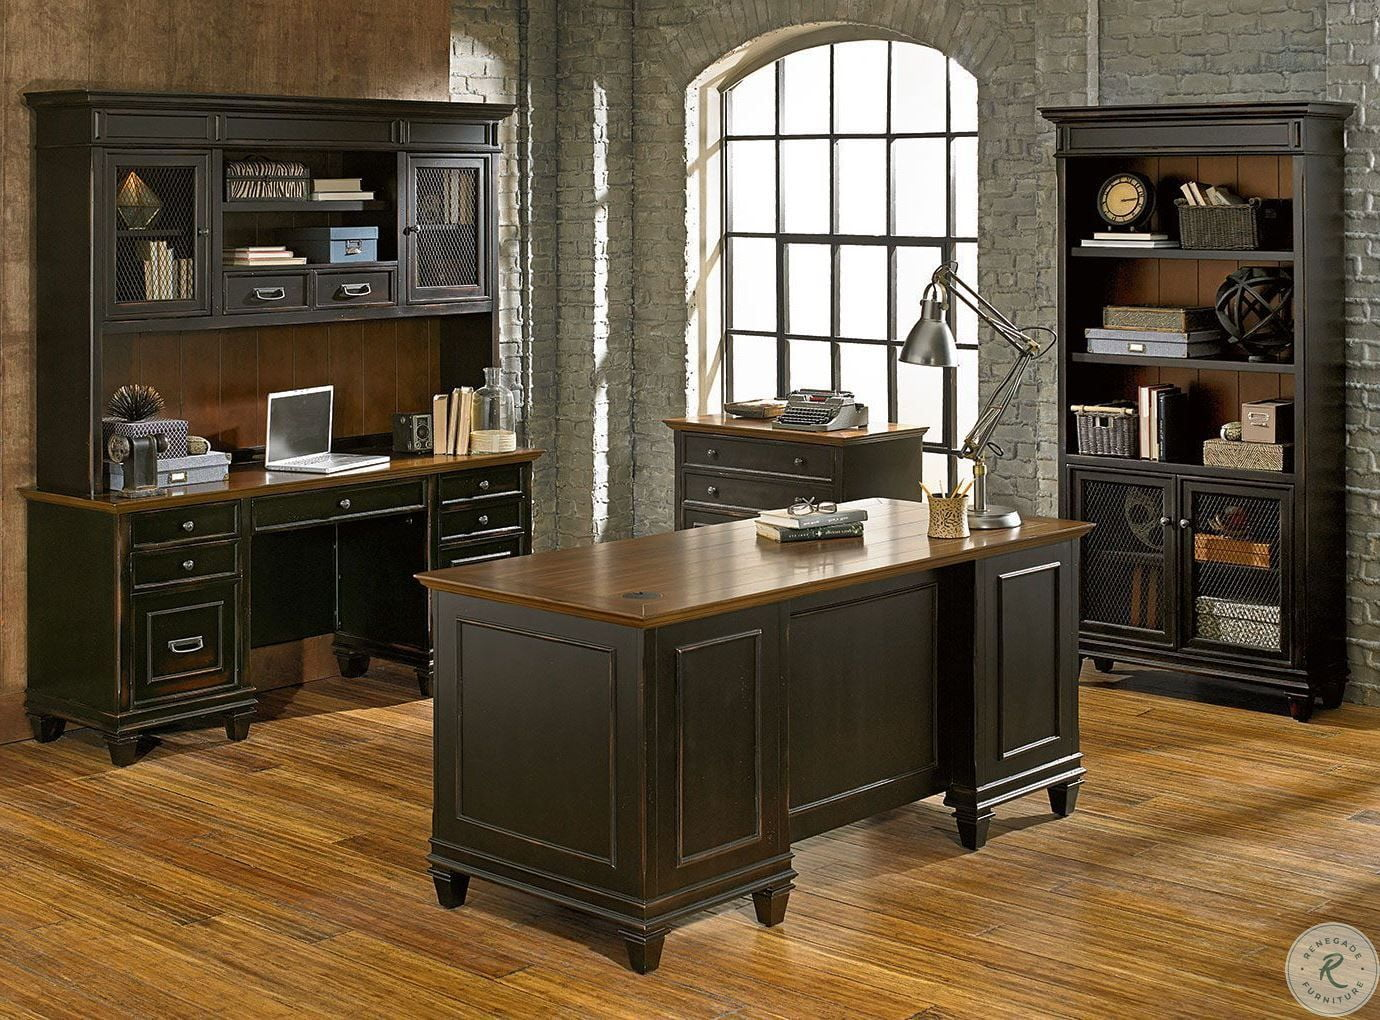 home decor high tone home decor catalogs.htm gorman executive home office set 80050 from coaster  80050  gorman executive home office set